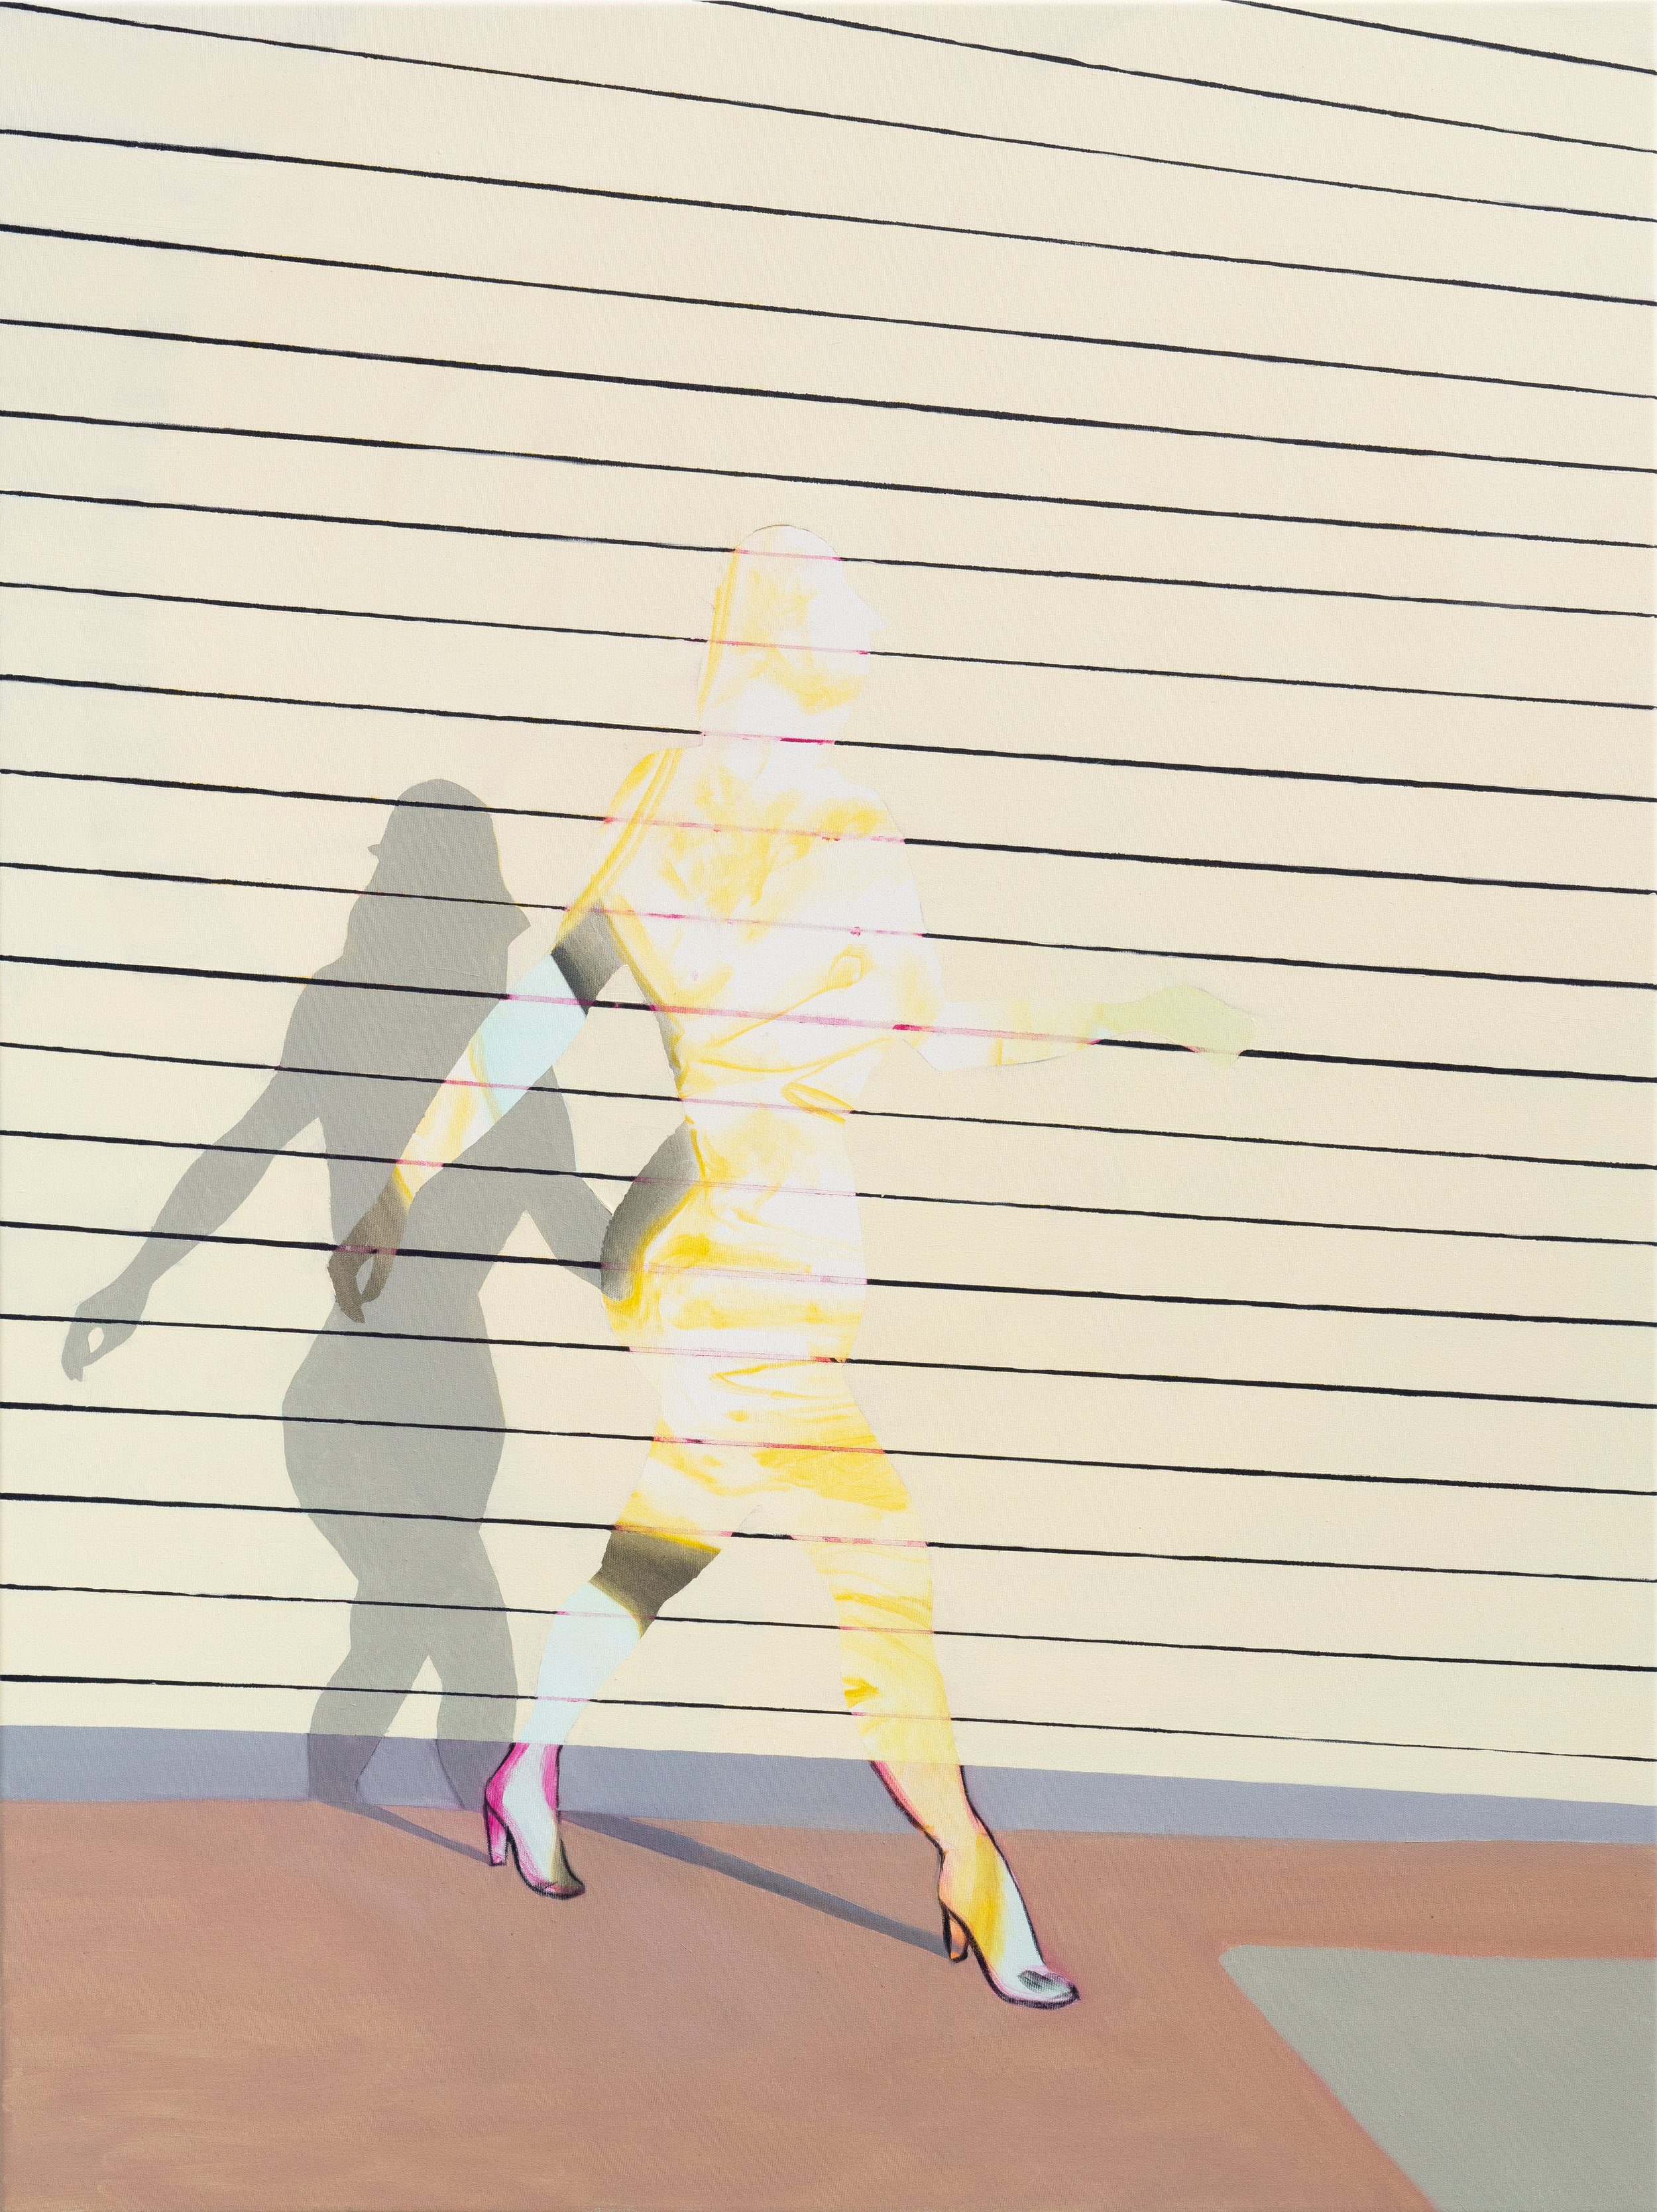 """SCATTER 36"""" x 48"""" Oil on Canvas $1,200.00 